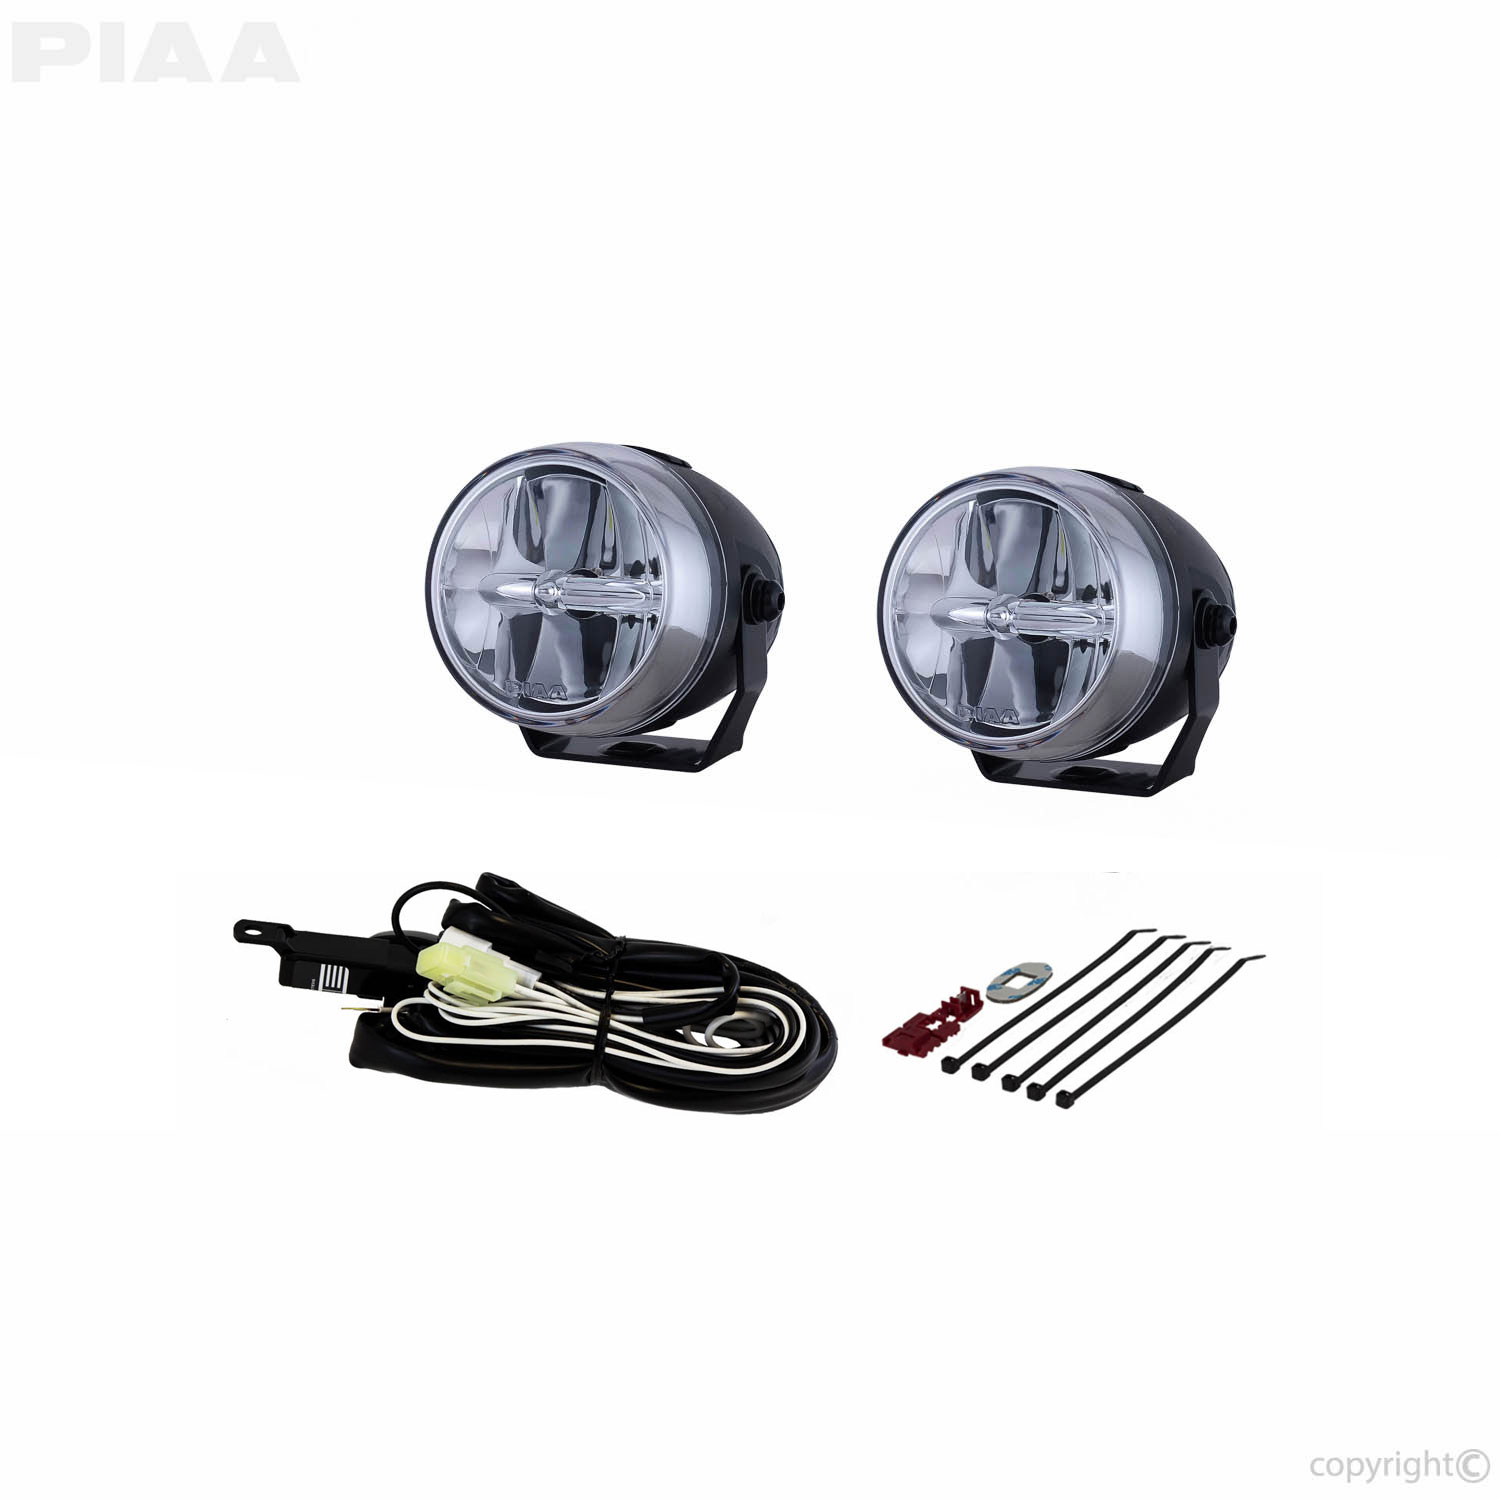 "LP270 2.75"" LED Fog Light Kit, SAE Compliant - 02770"